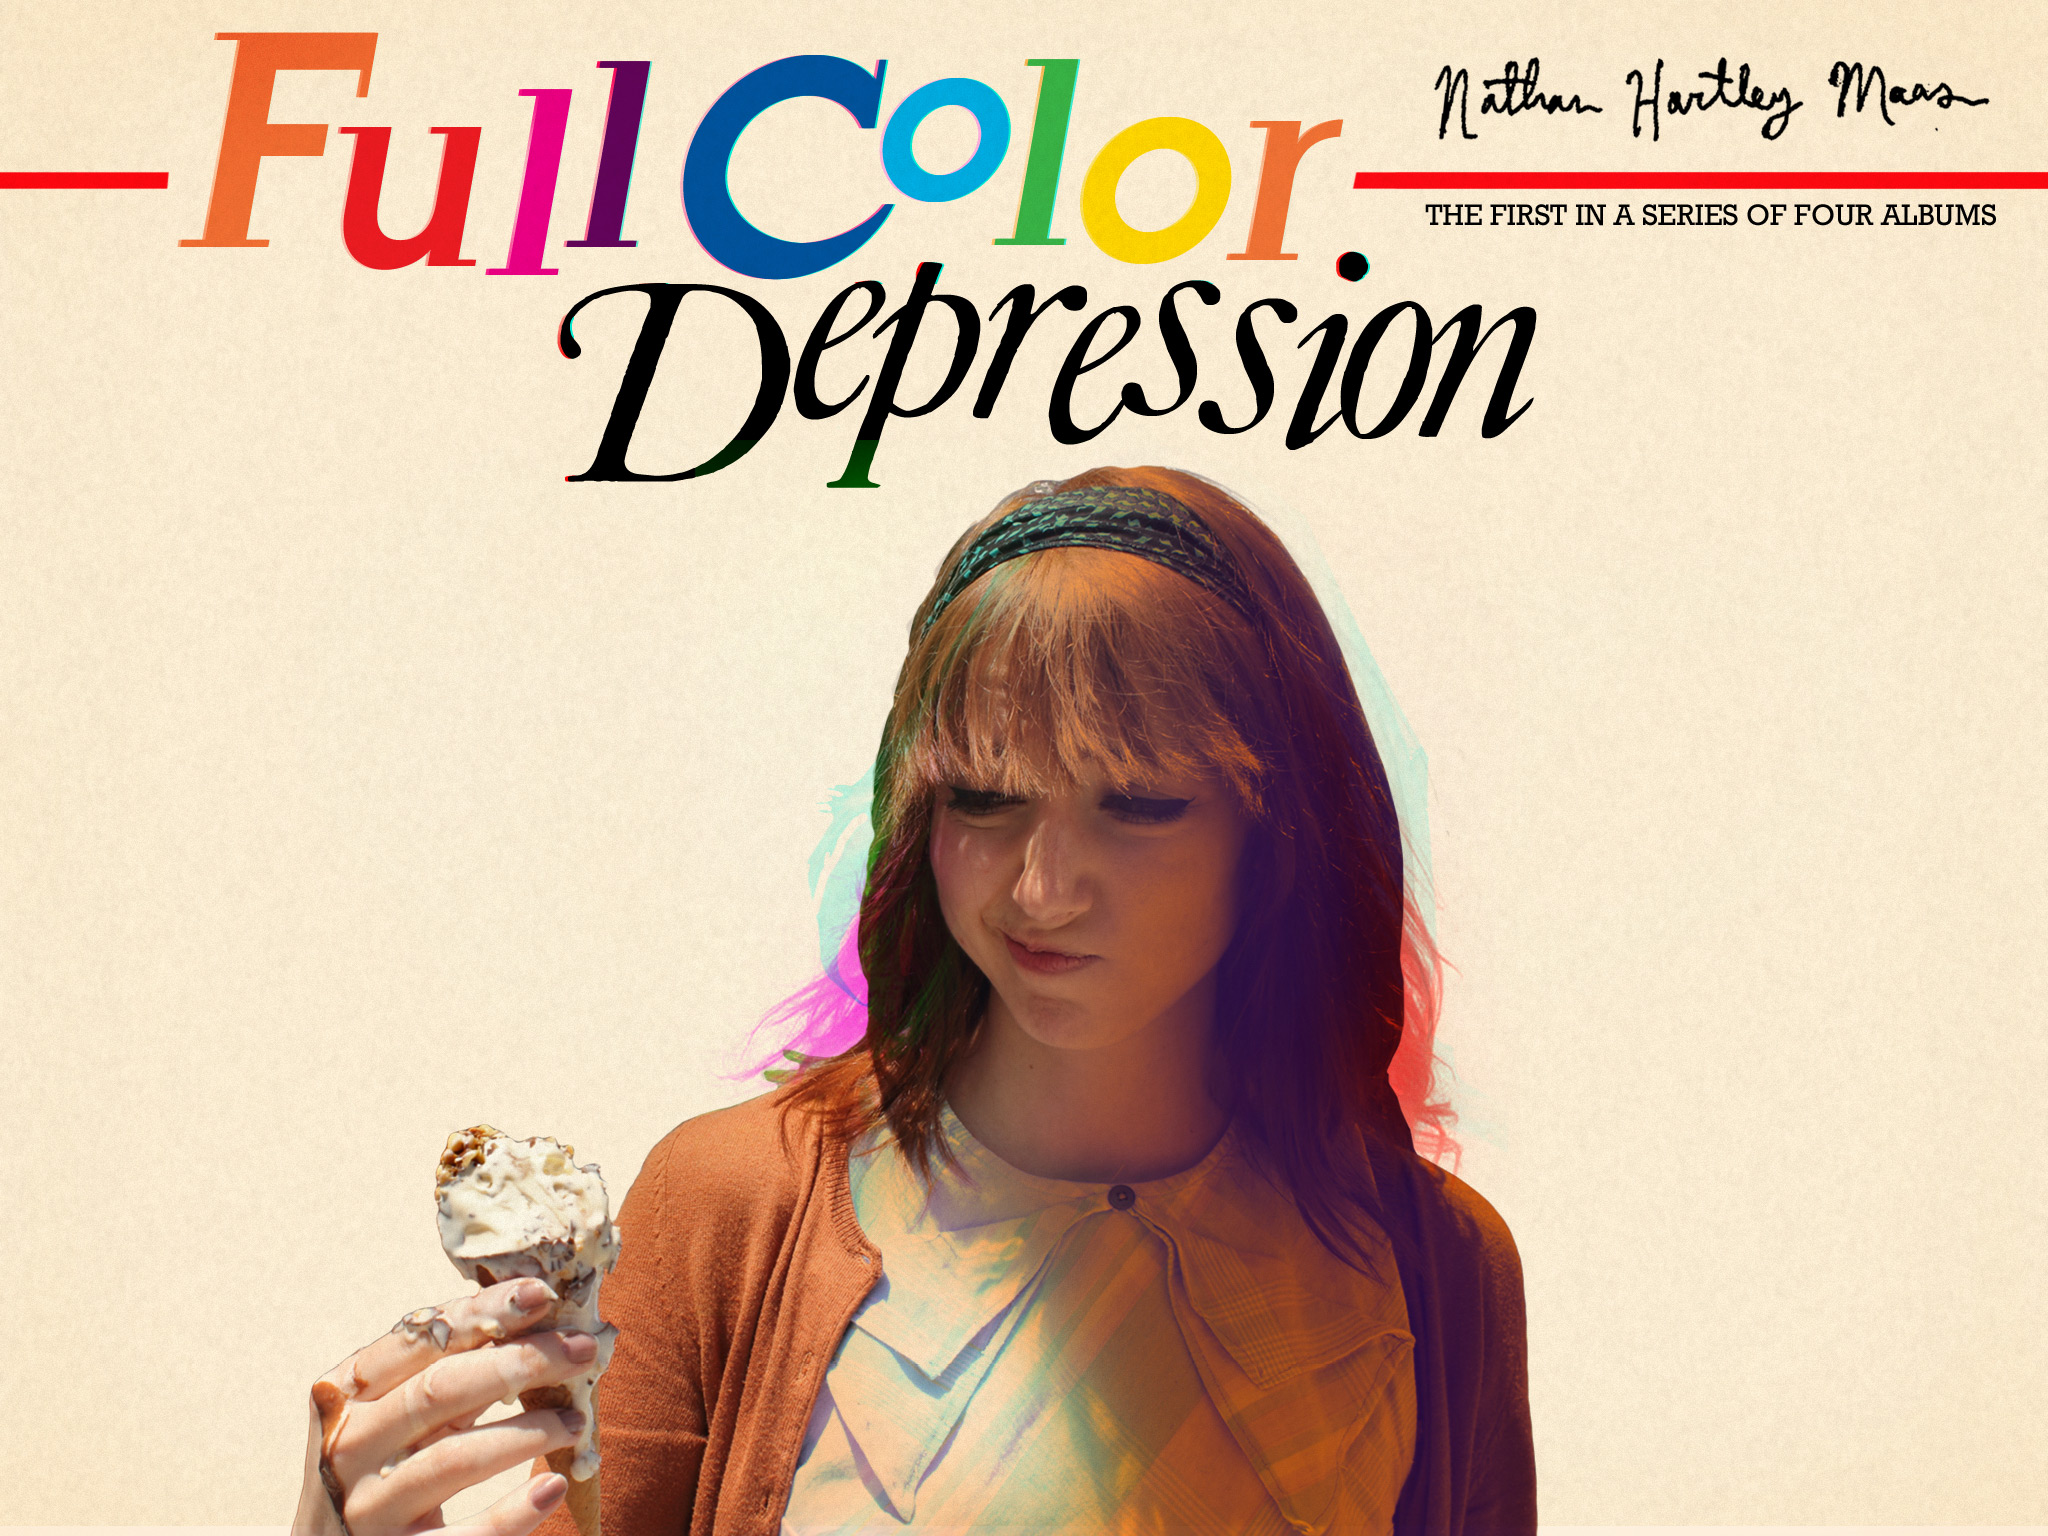 Full Color Depression  by Nathan Hartley Maas